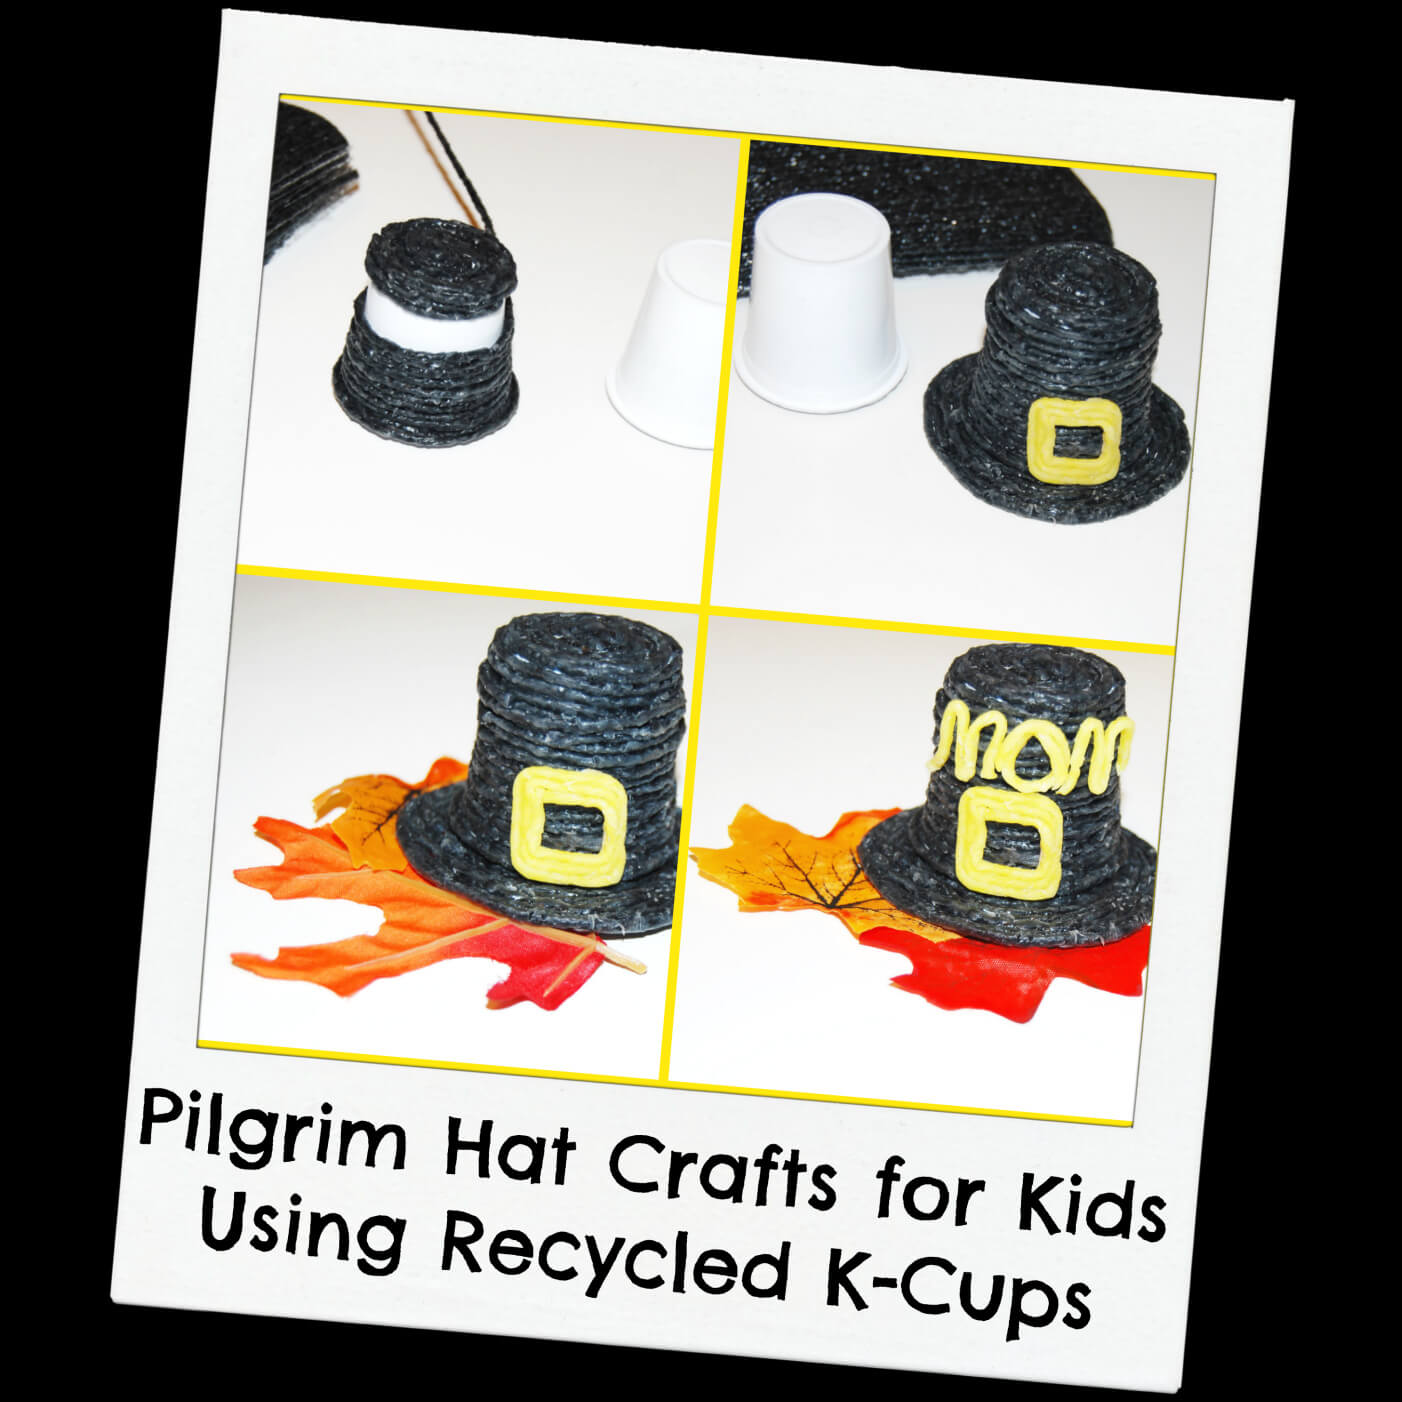 Pilgrim Hat Crafts for Kids with Recycled K-Cups!